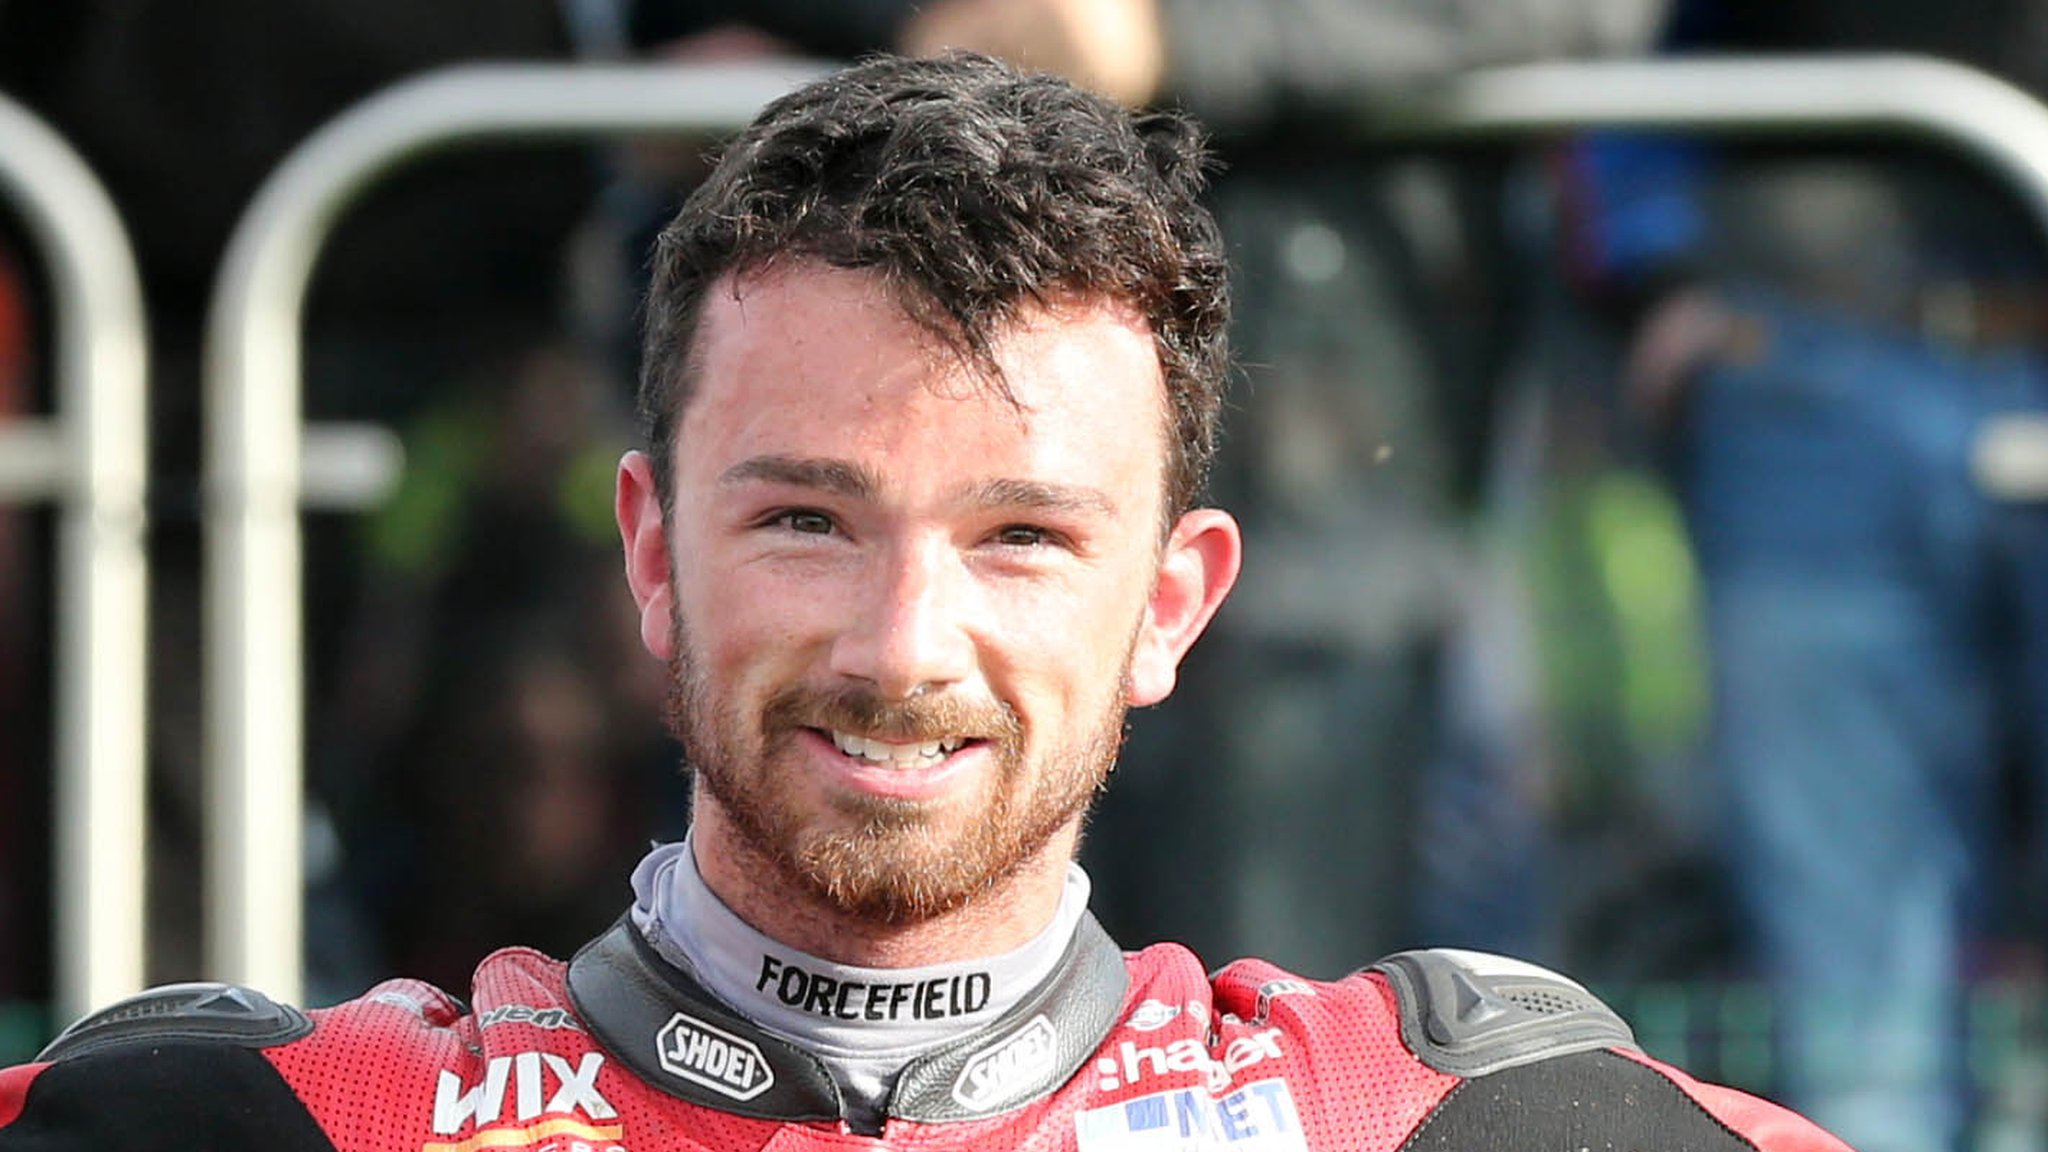 British Superbikes: Glenn Irwin runner-up in race one at Snetterton